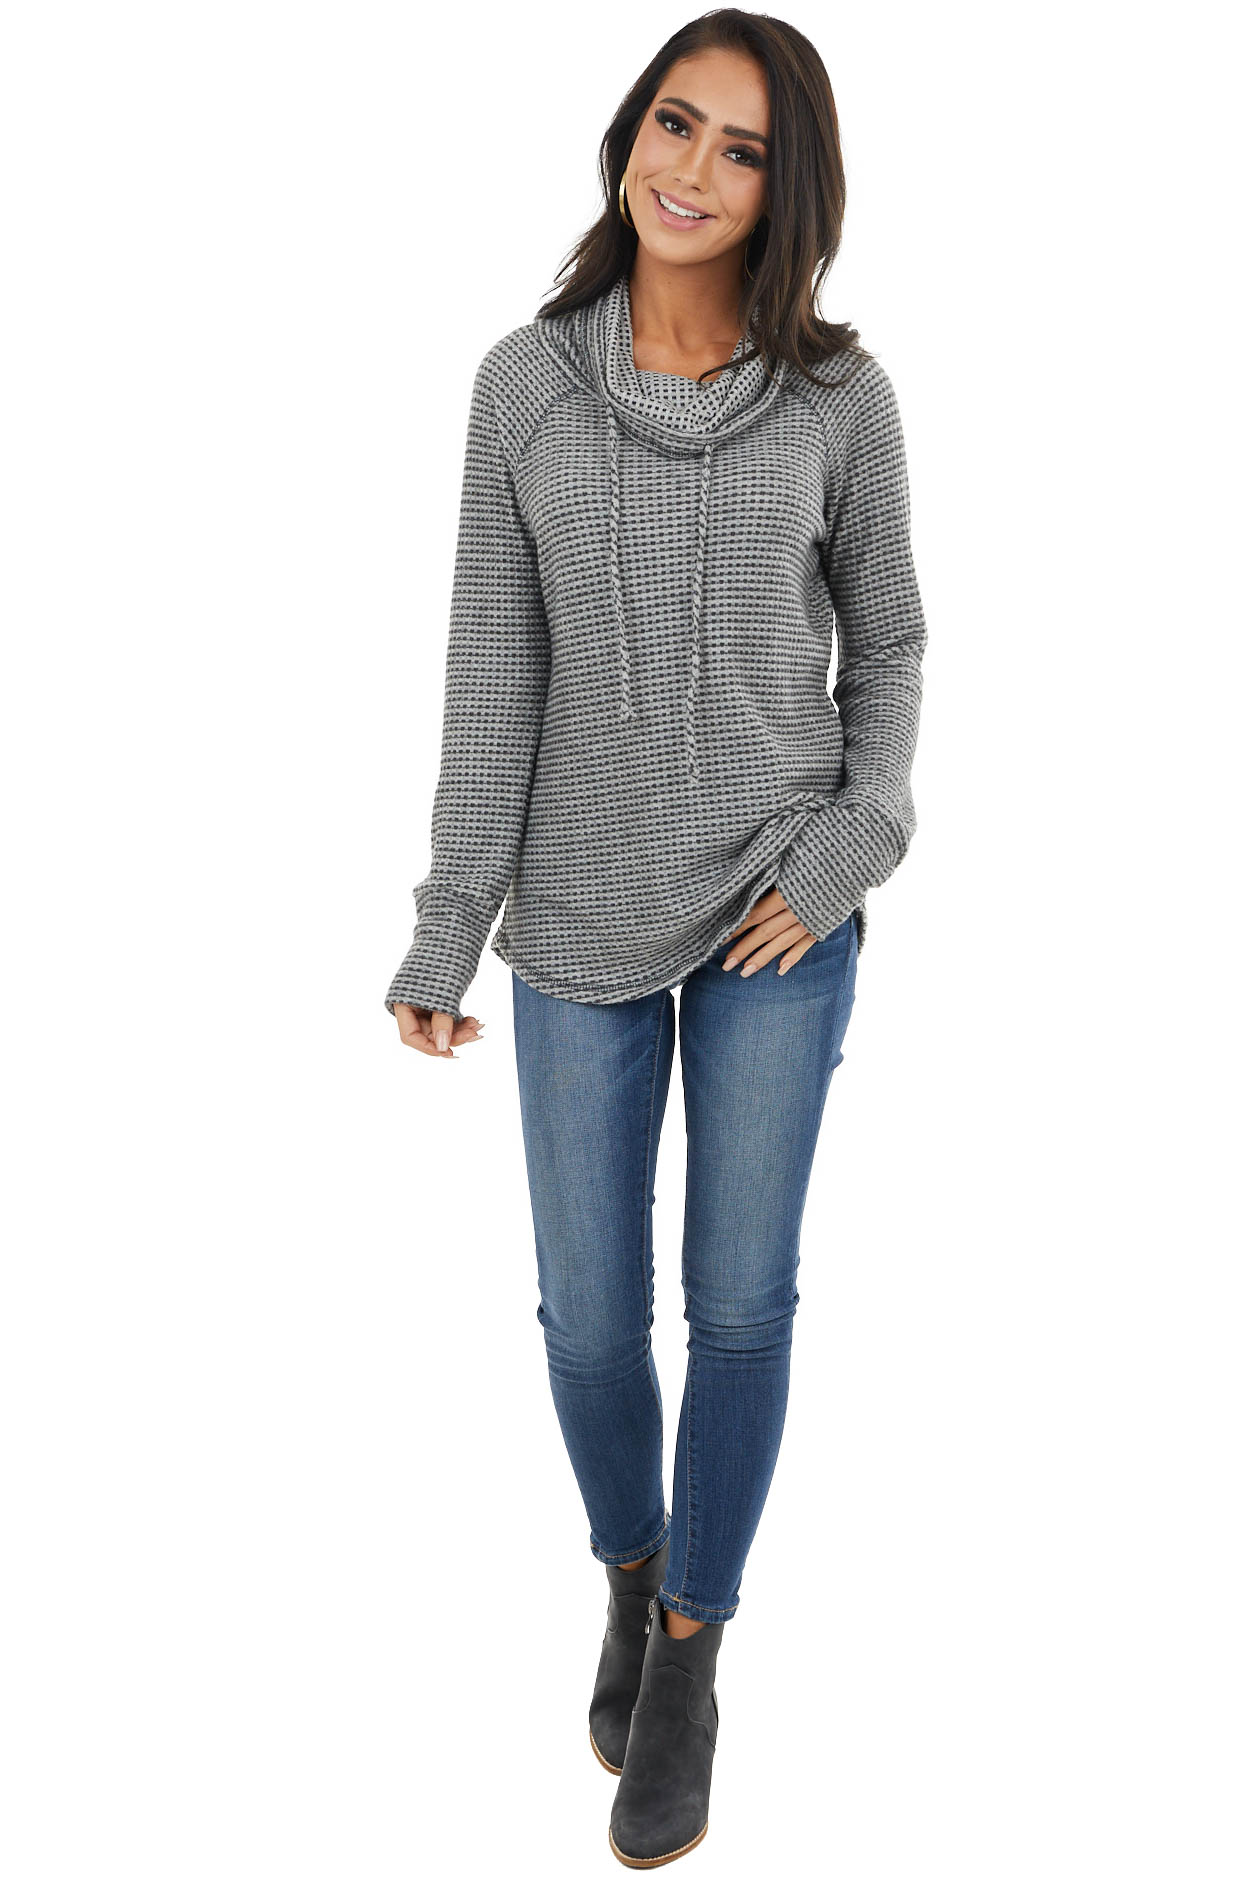 Charcoal Waffle Knit Long Sleeve Raglan Top with Cowl Neck